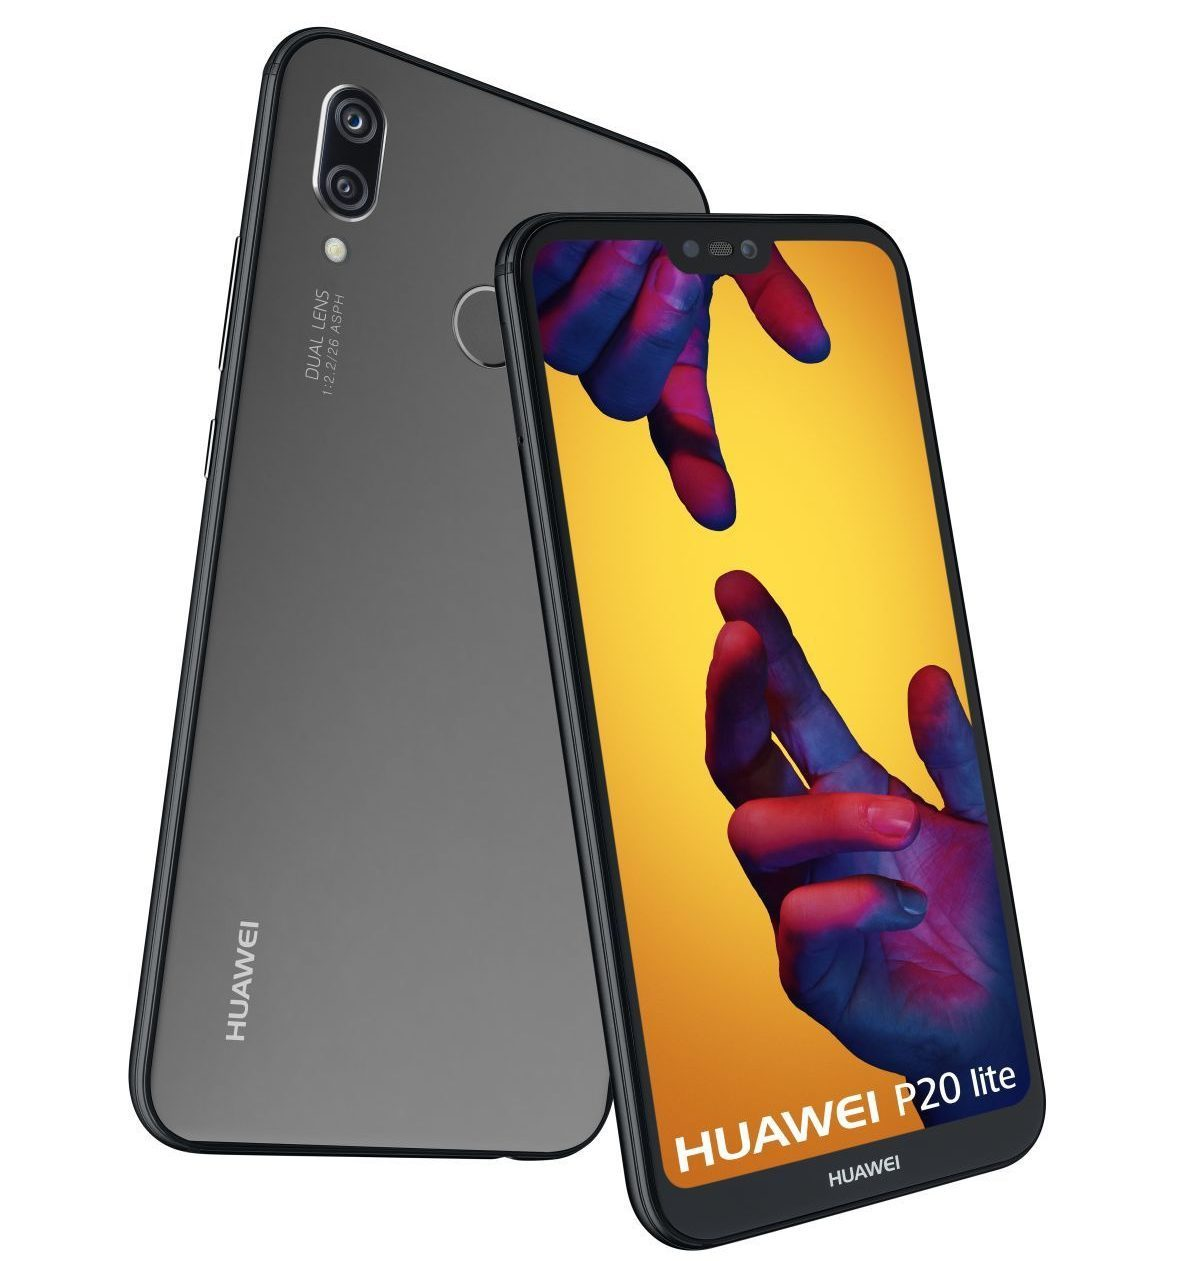 huawei p20 lite now available from stock in the netherlands - fortnite auf huawei p20 lite